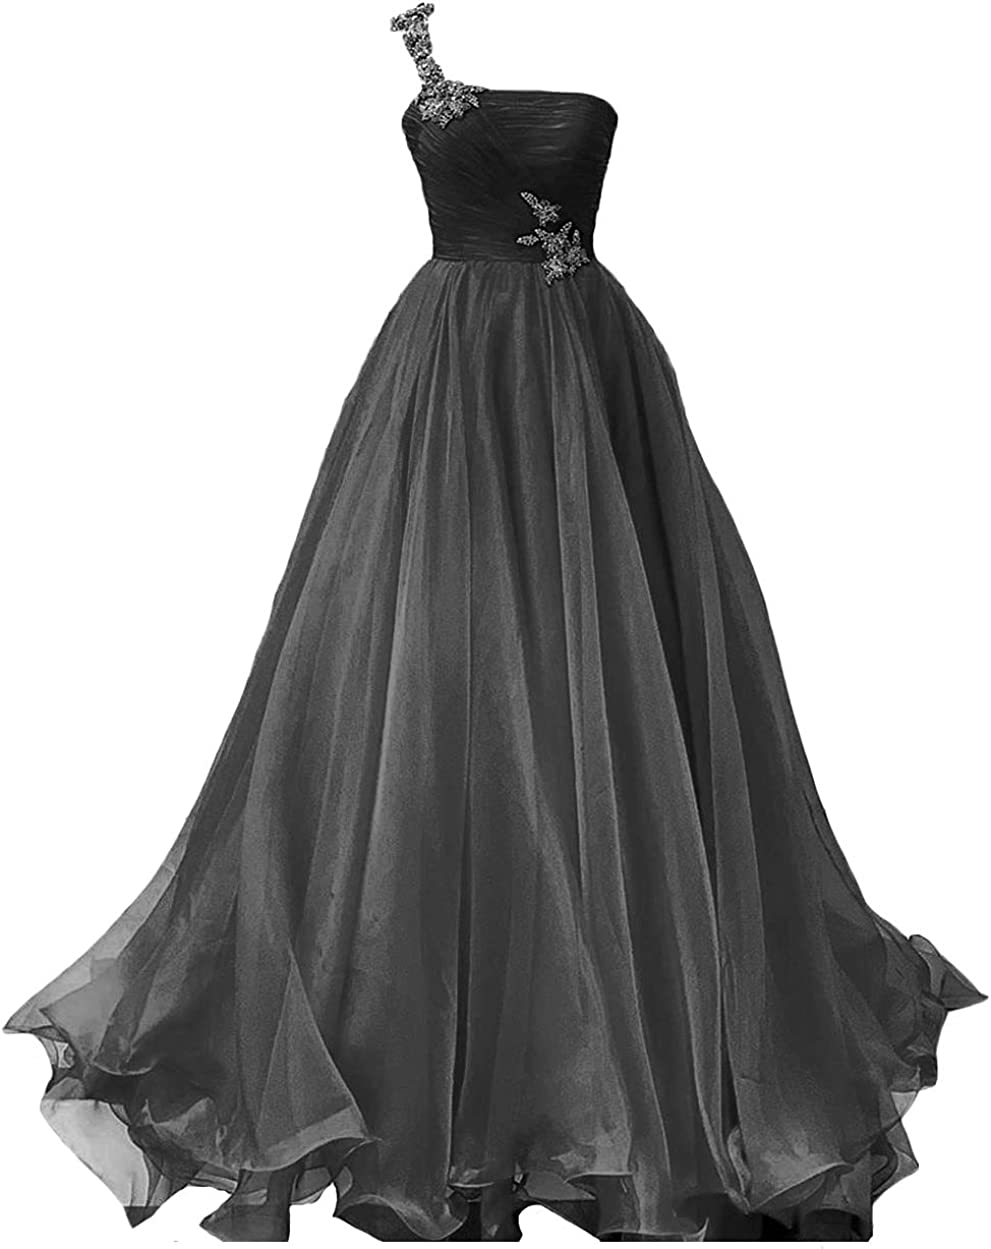 Dydsz Women's Elegant Evening Dresses Dress One Party Fresno Direct stock discount Mall Formal for